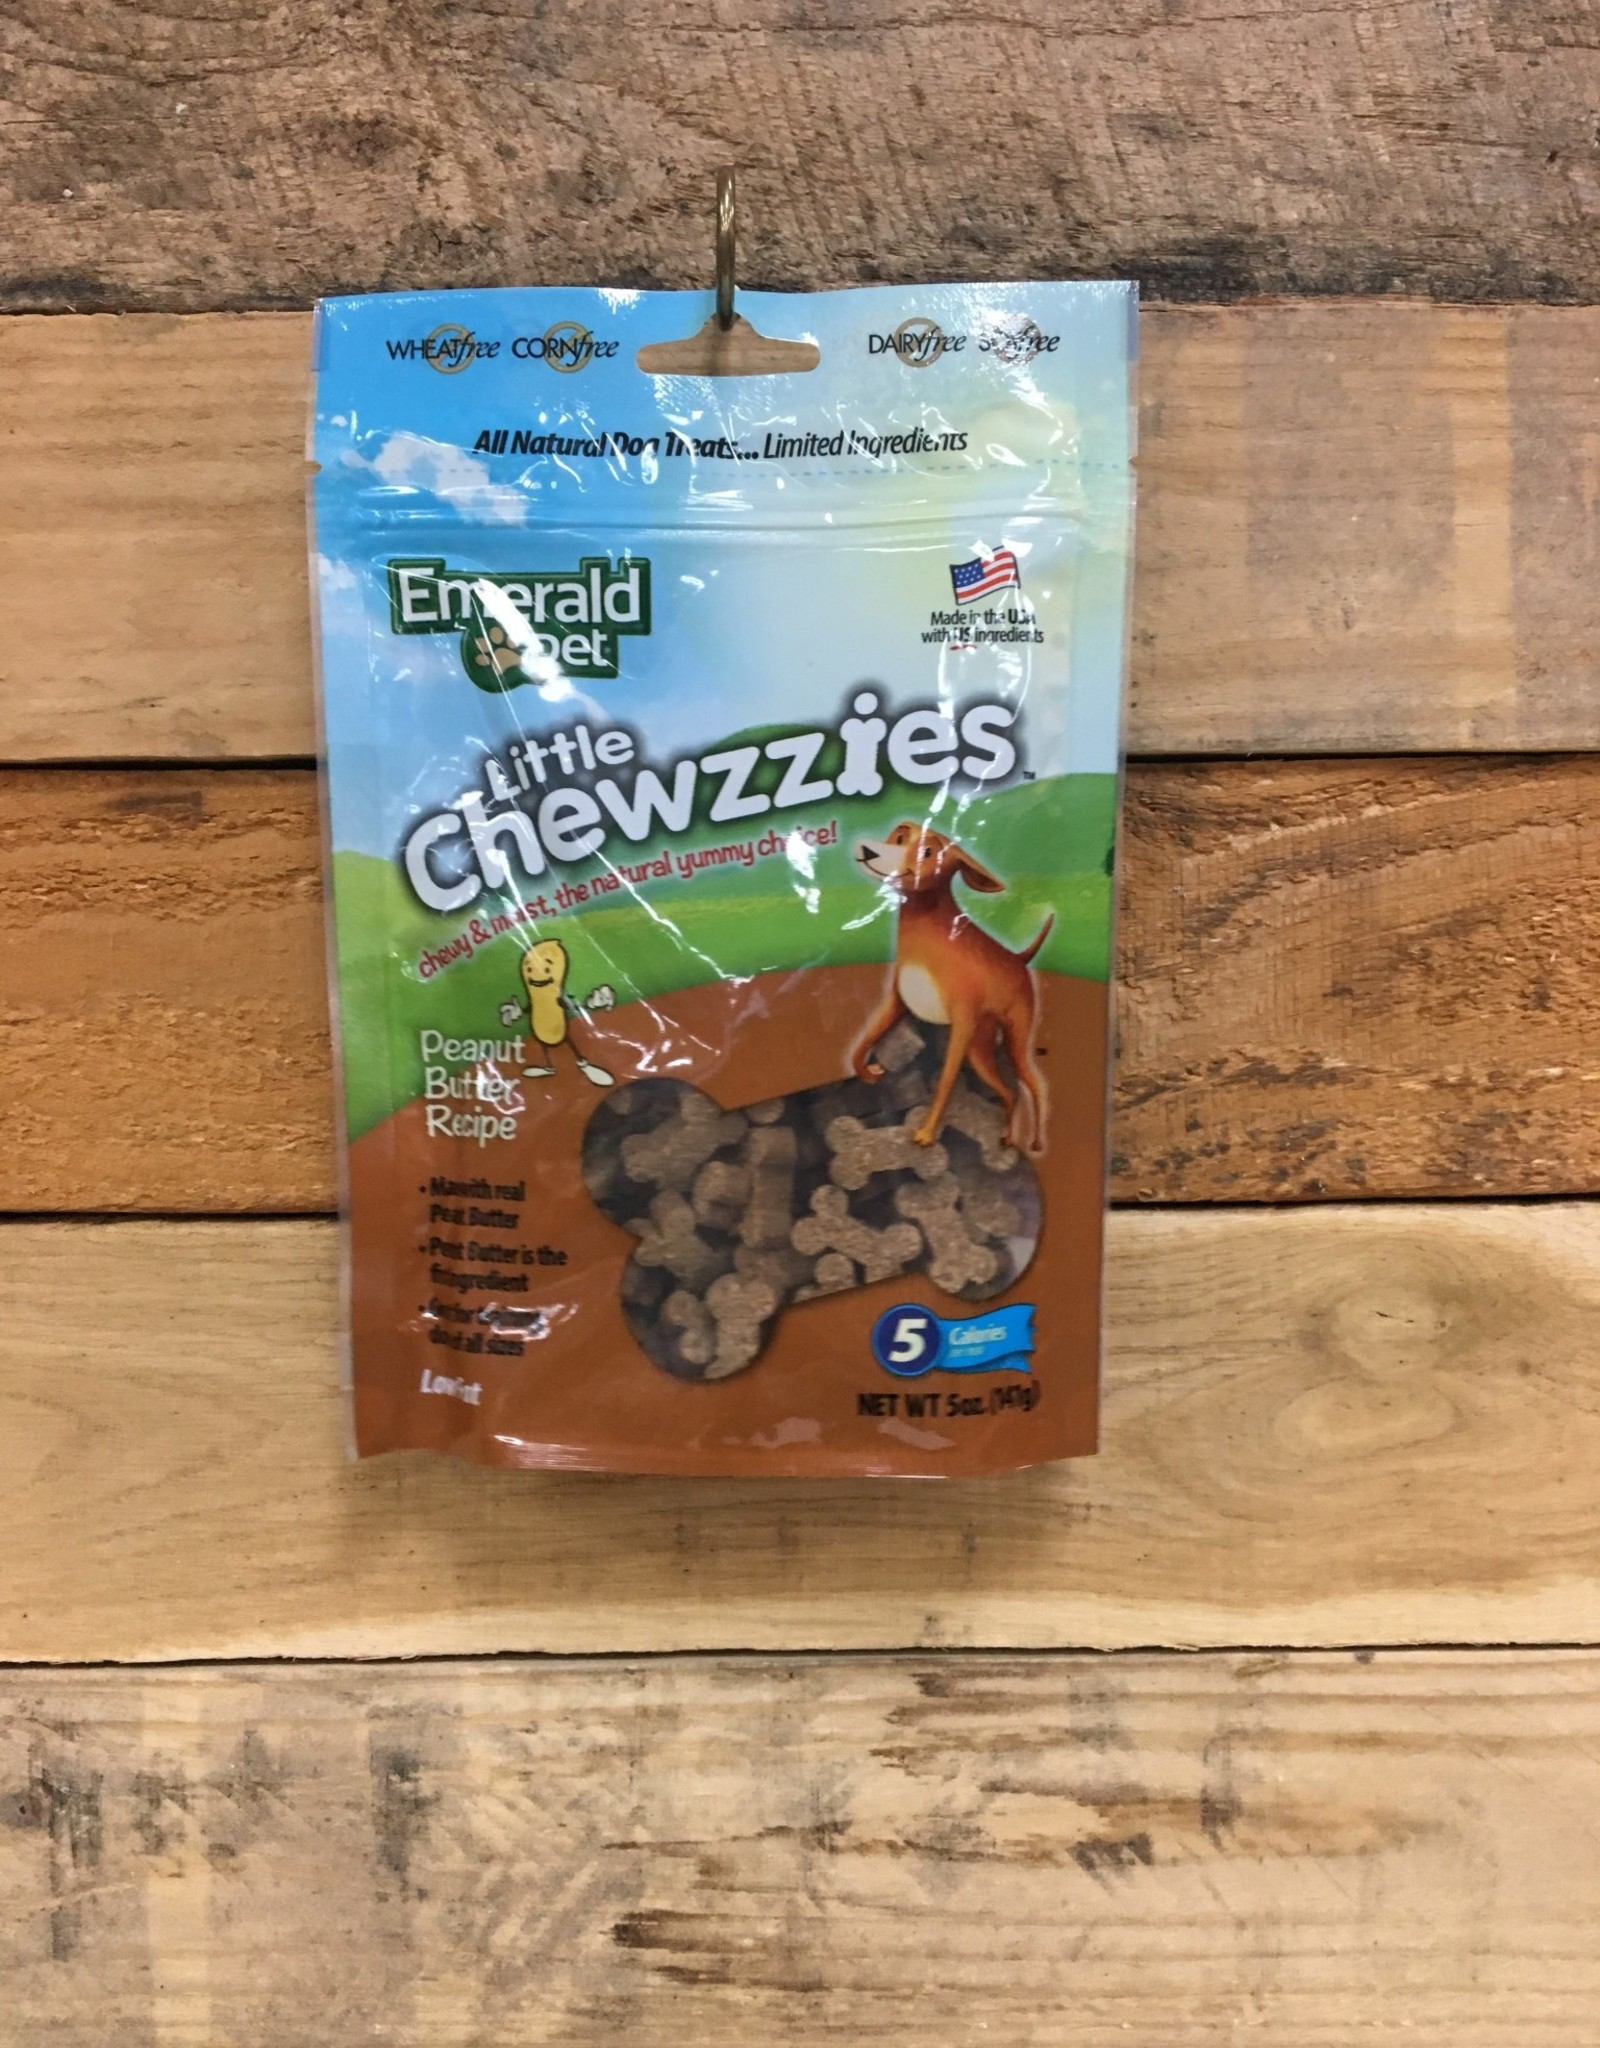 Emerald smart n tasty little chewzzies peanut butter 5oz